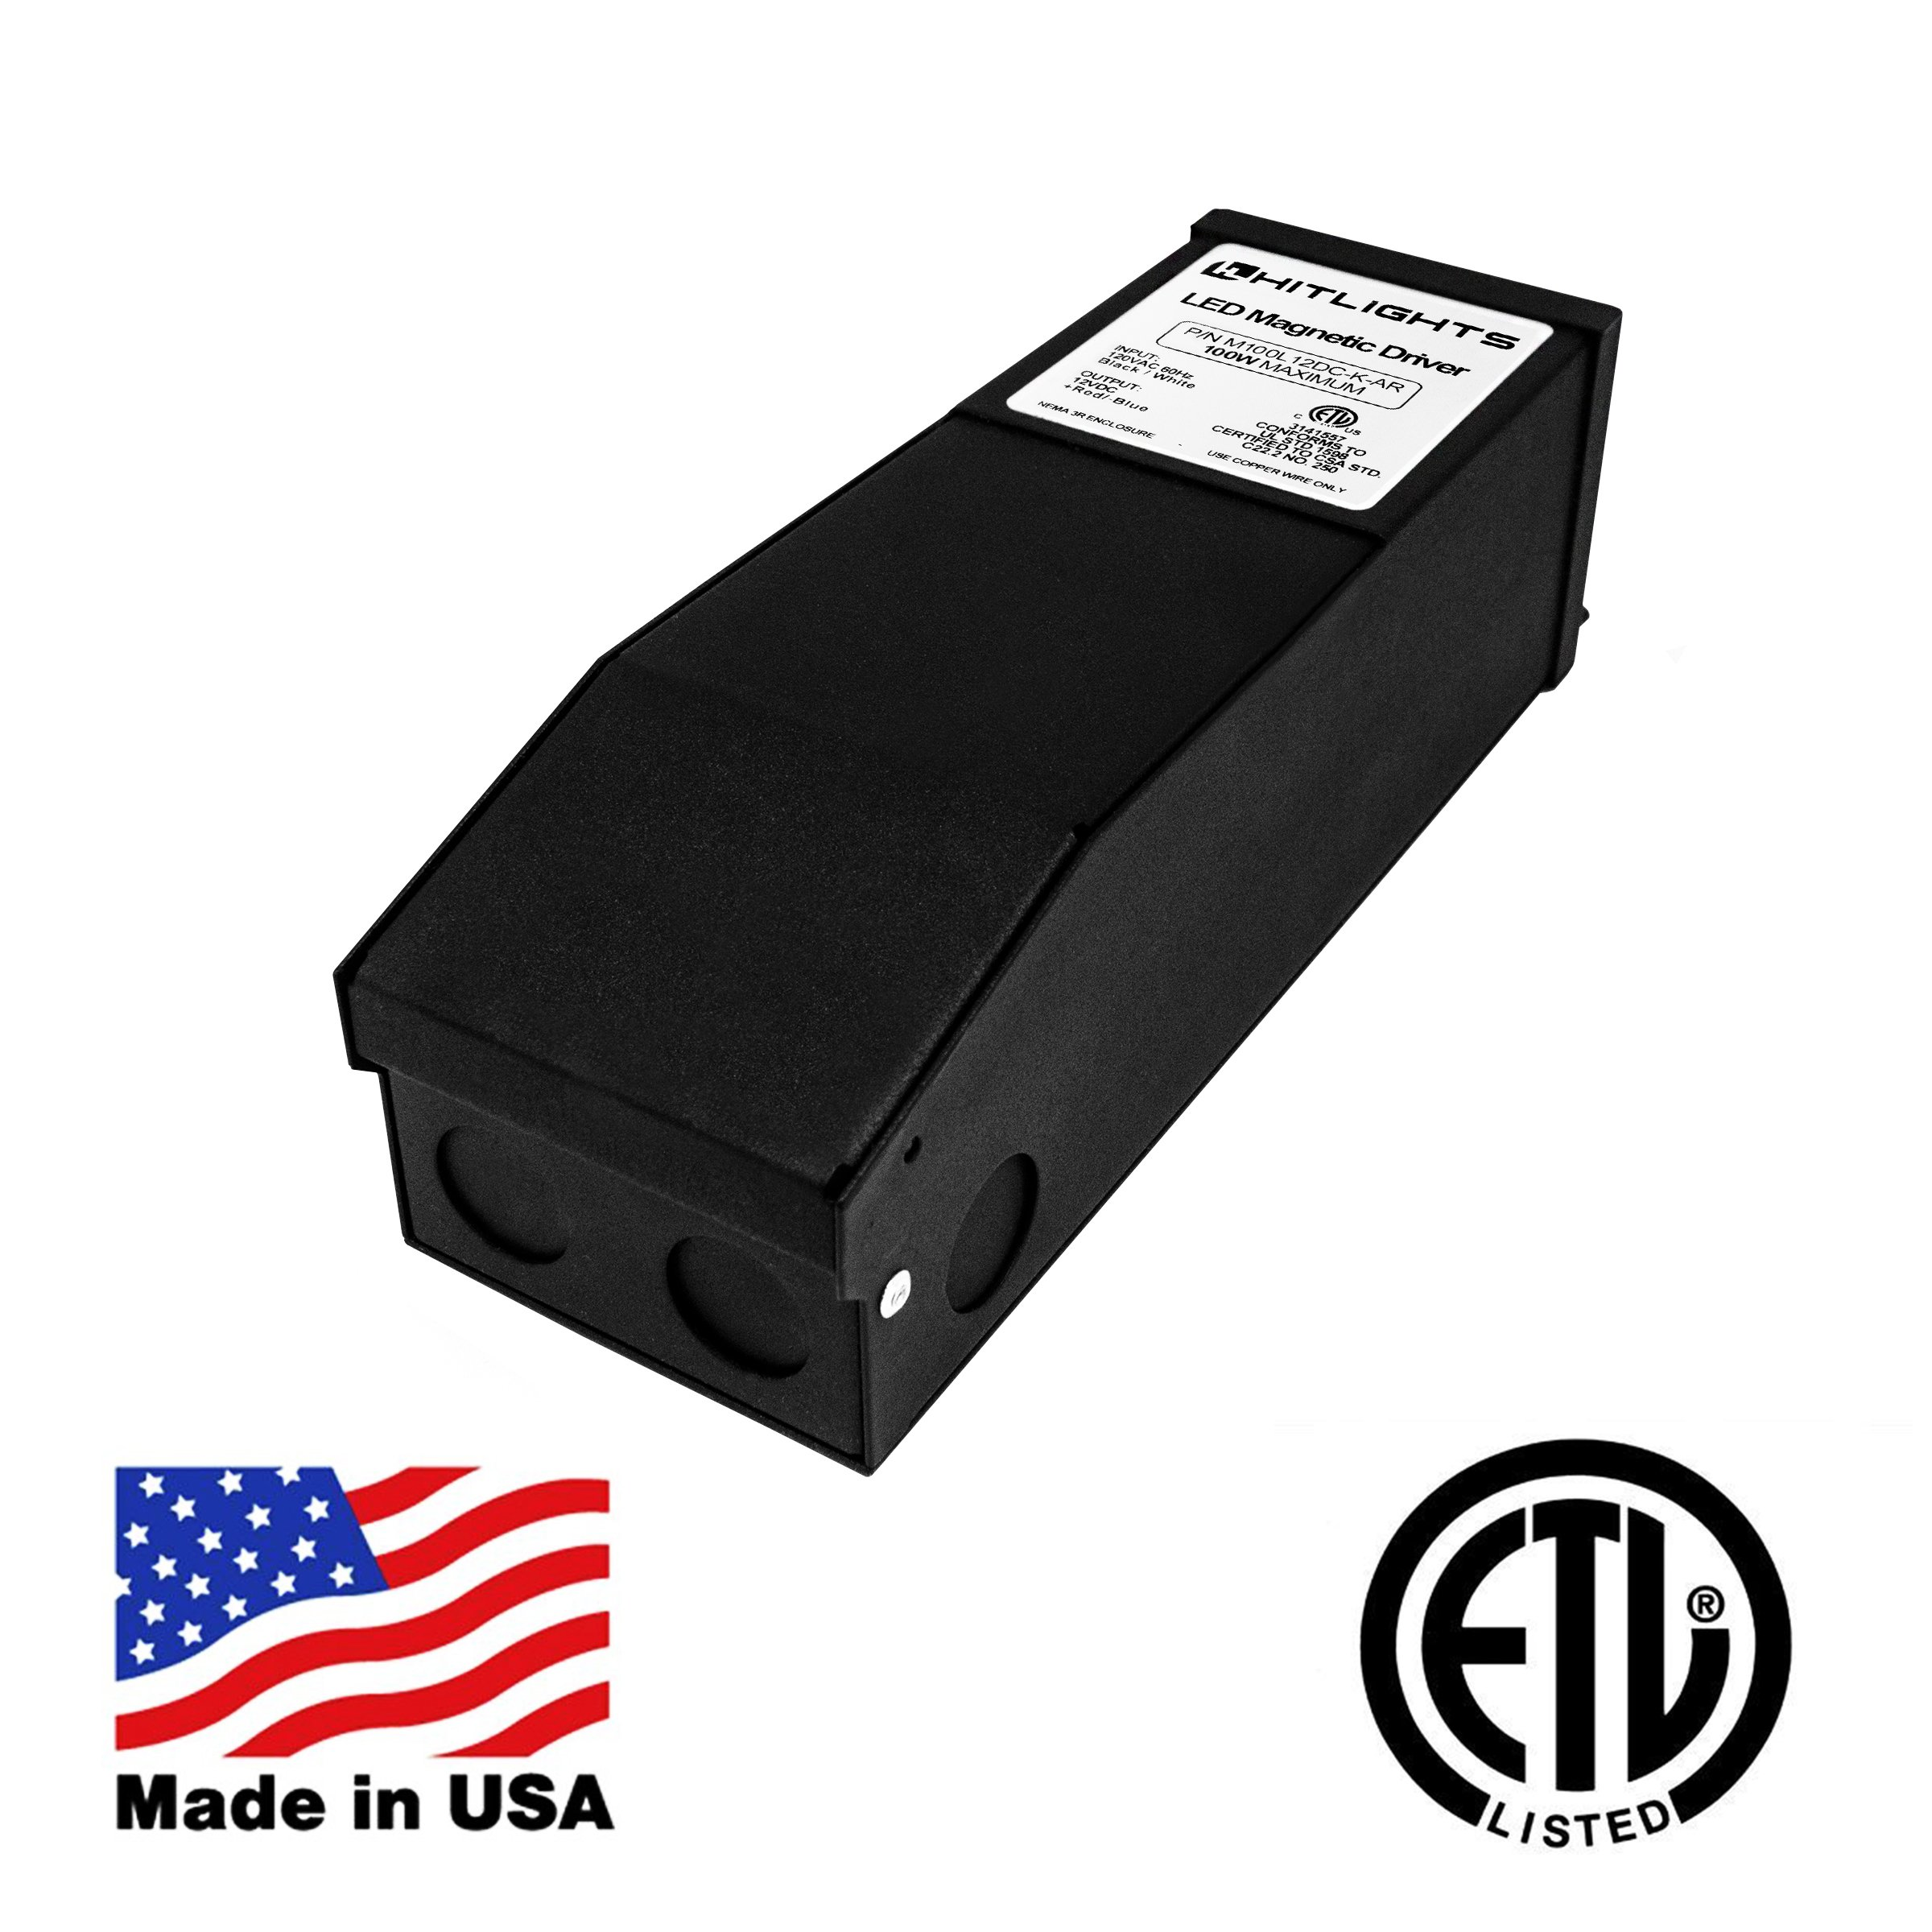 HitLights 100 Watt Dimmable Driver, Magnetic, for LED Light Strips - 110V AC-12V DC Transformer. Made in the USA. Compatible with Lutron and Leviton